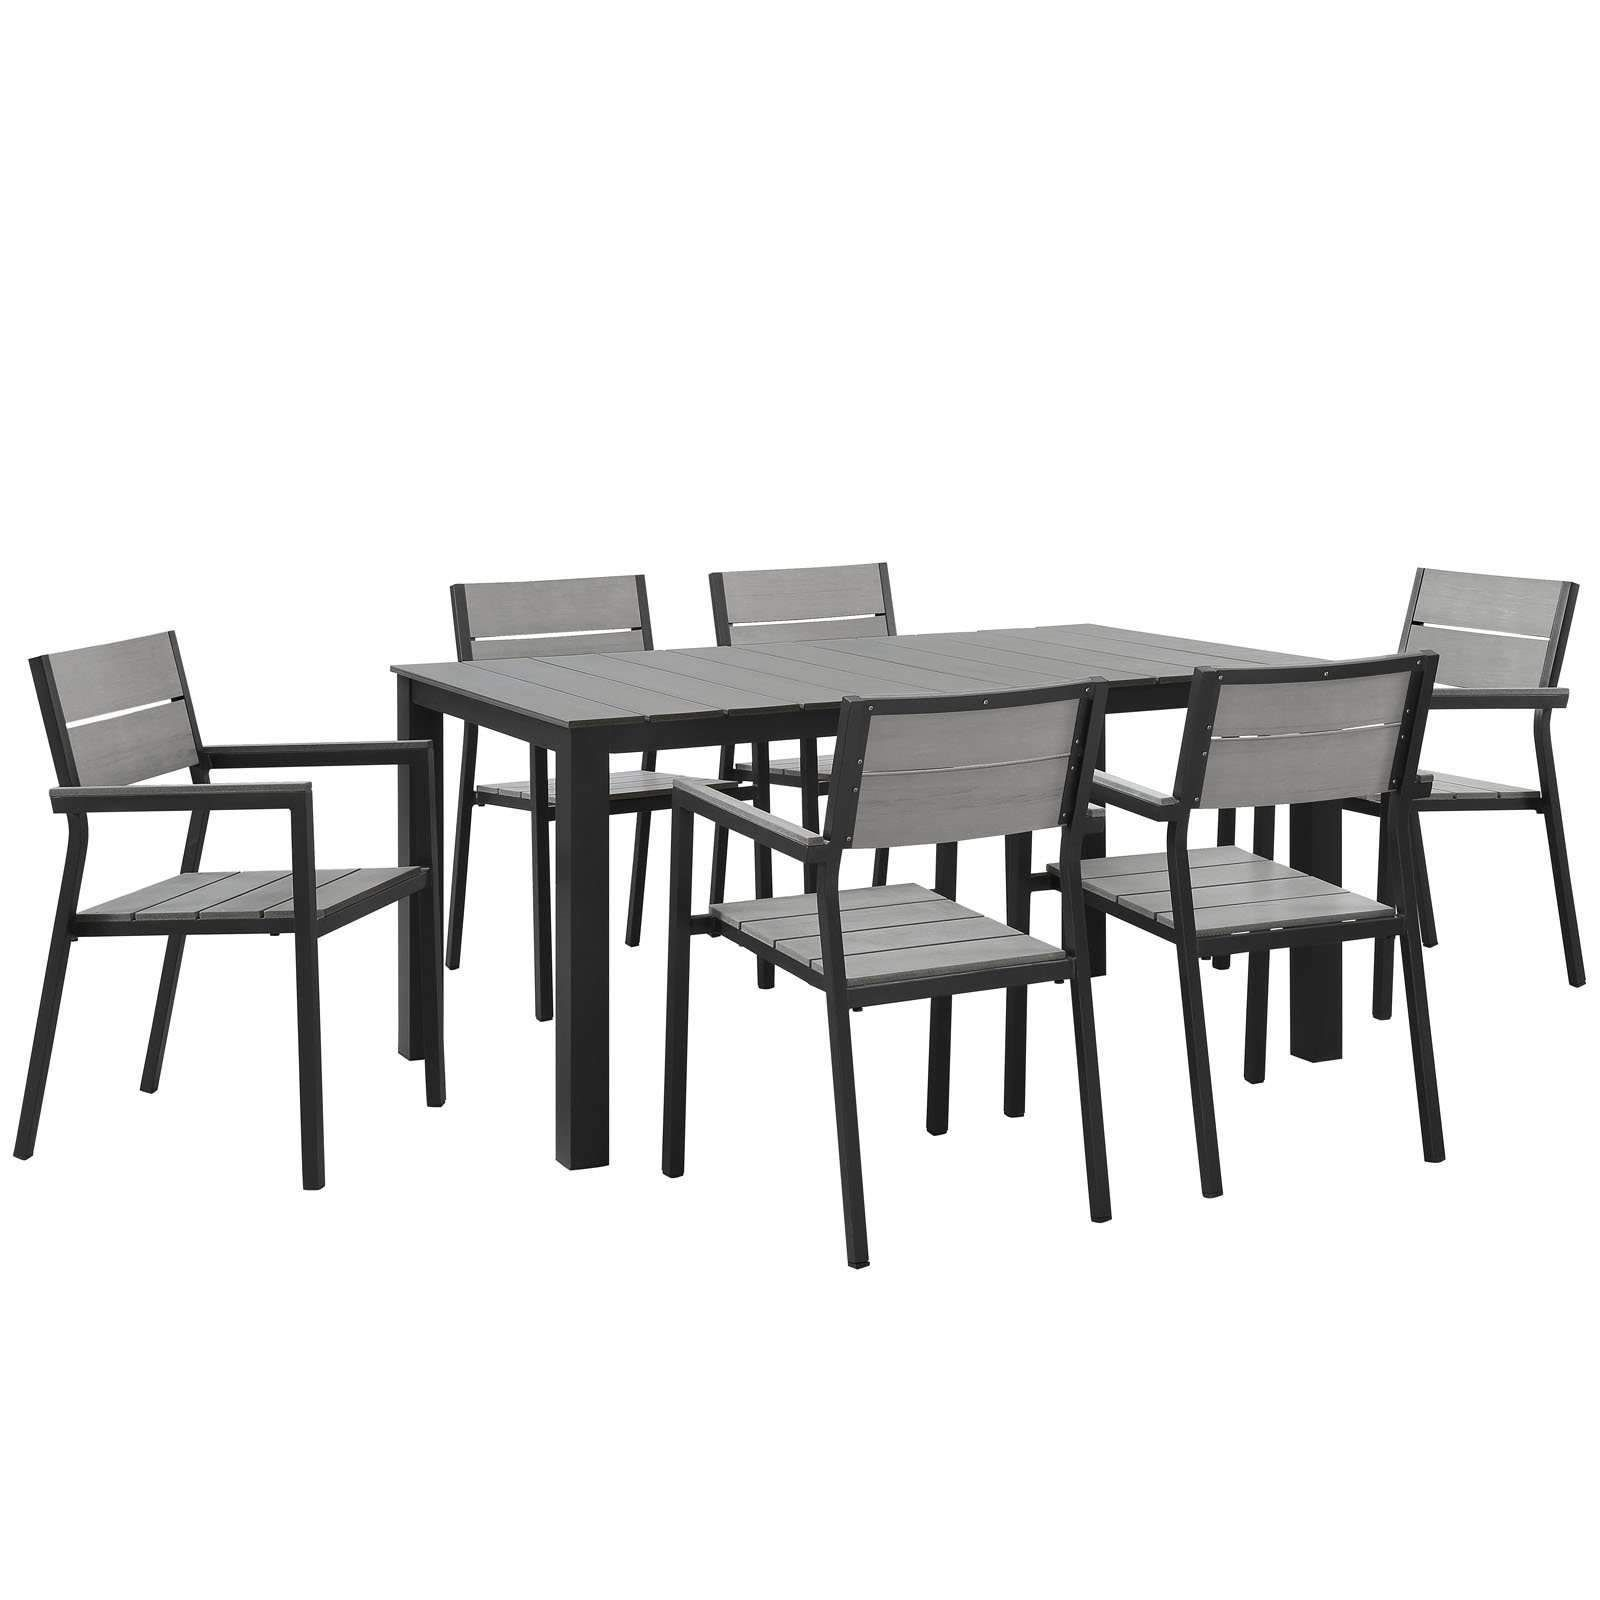 Awesome Maine 7 Piece Outdoor Patio Dining Set EEI 1749